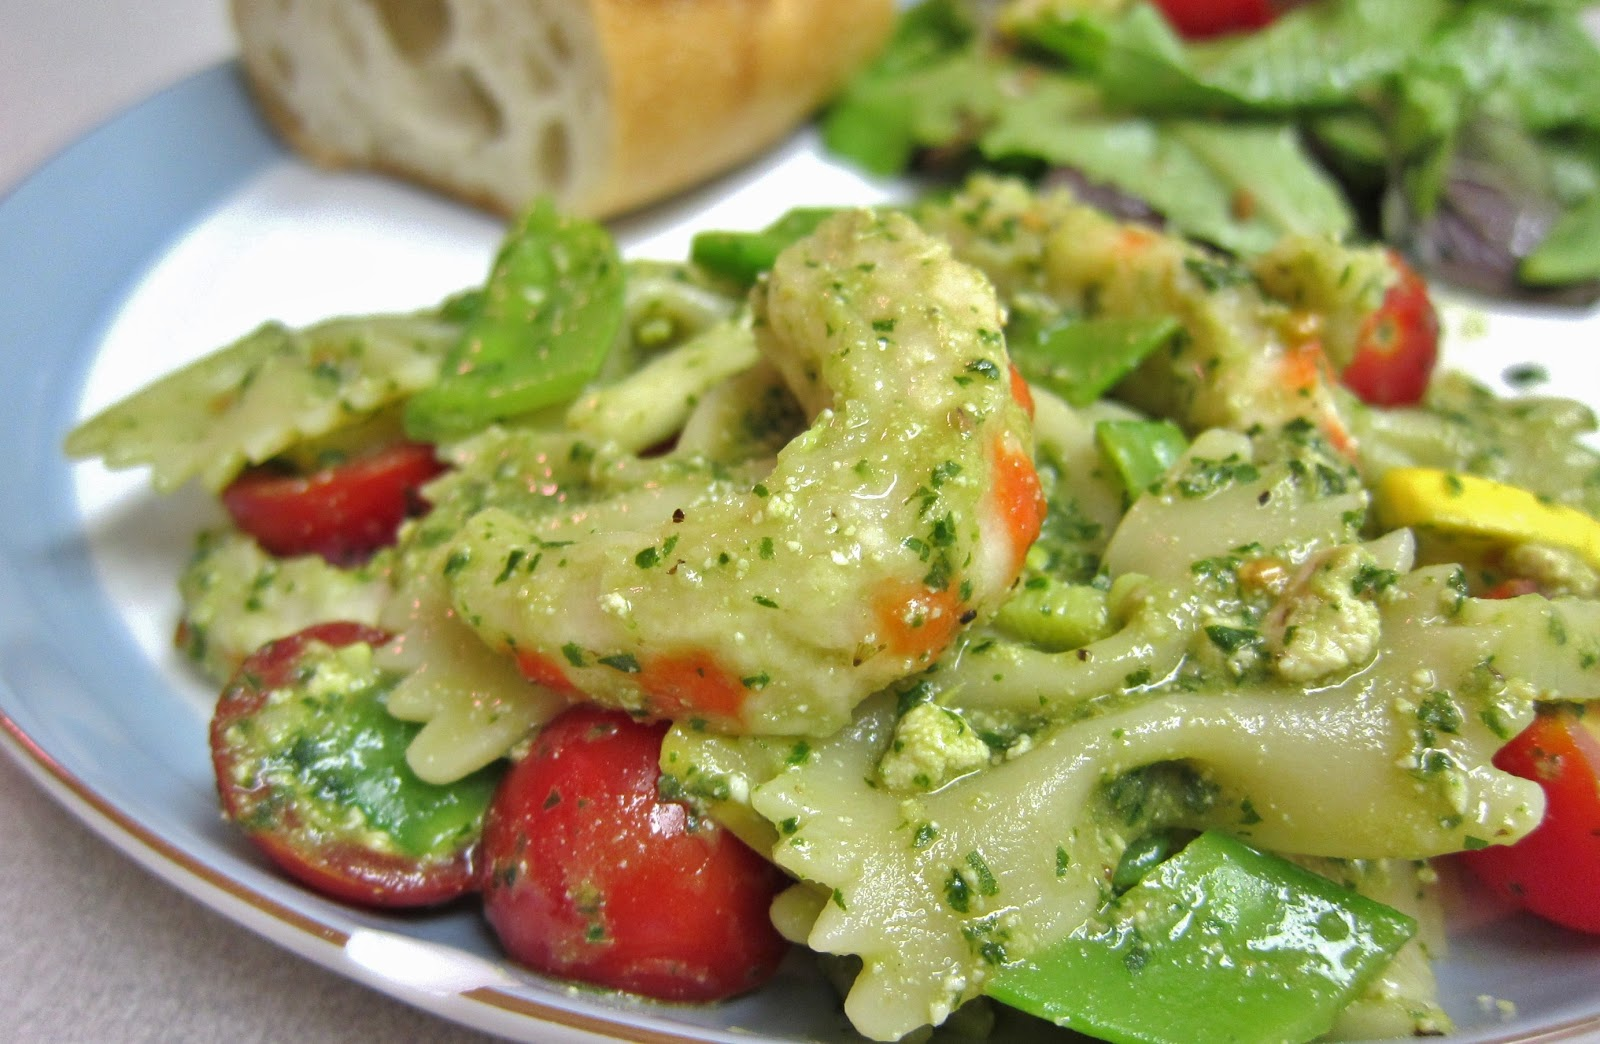 Summer Veggies With Pasta And Shrimp Recipes — Dishmaps